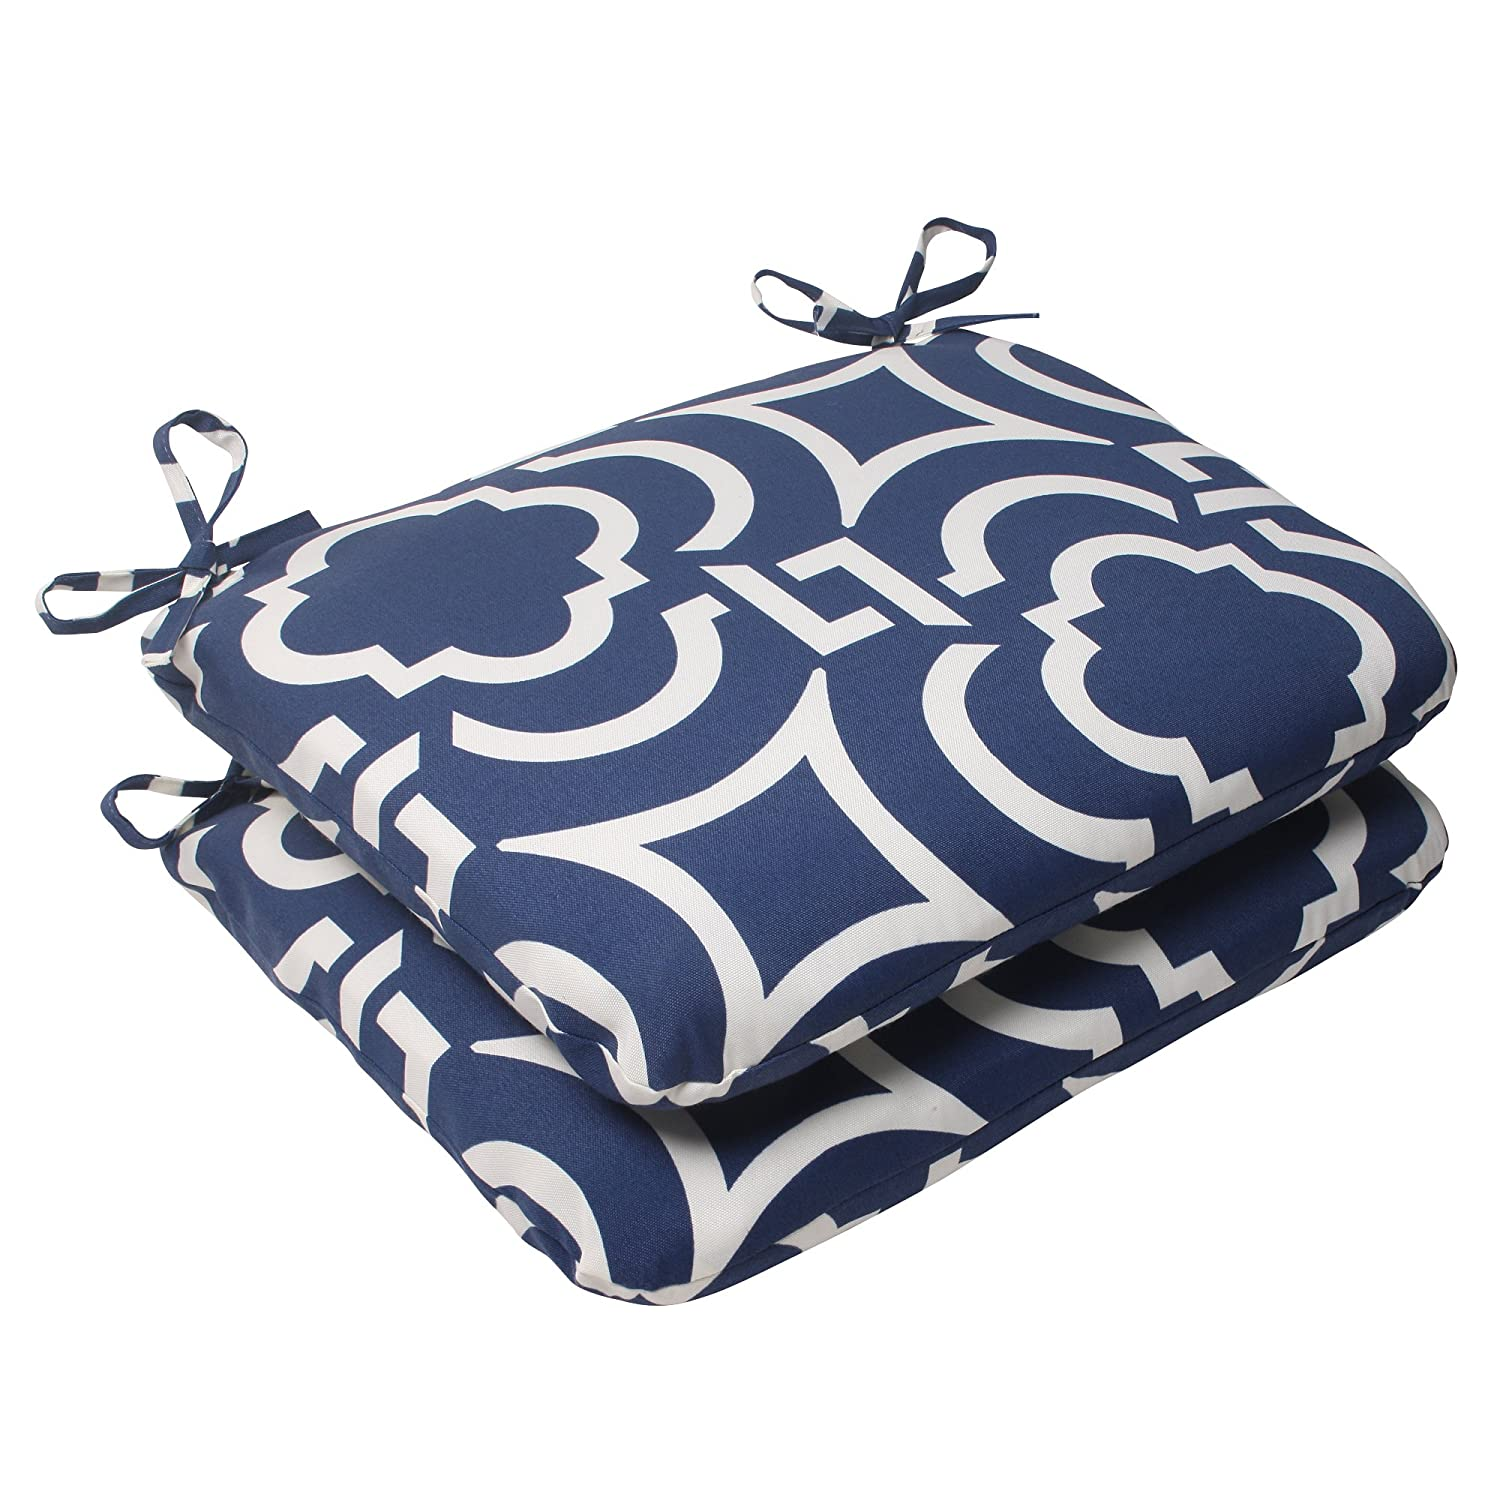 Pillow Perfect Outdoor Carmody Rounded Seat Cushion, Navy, Set of 2